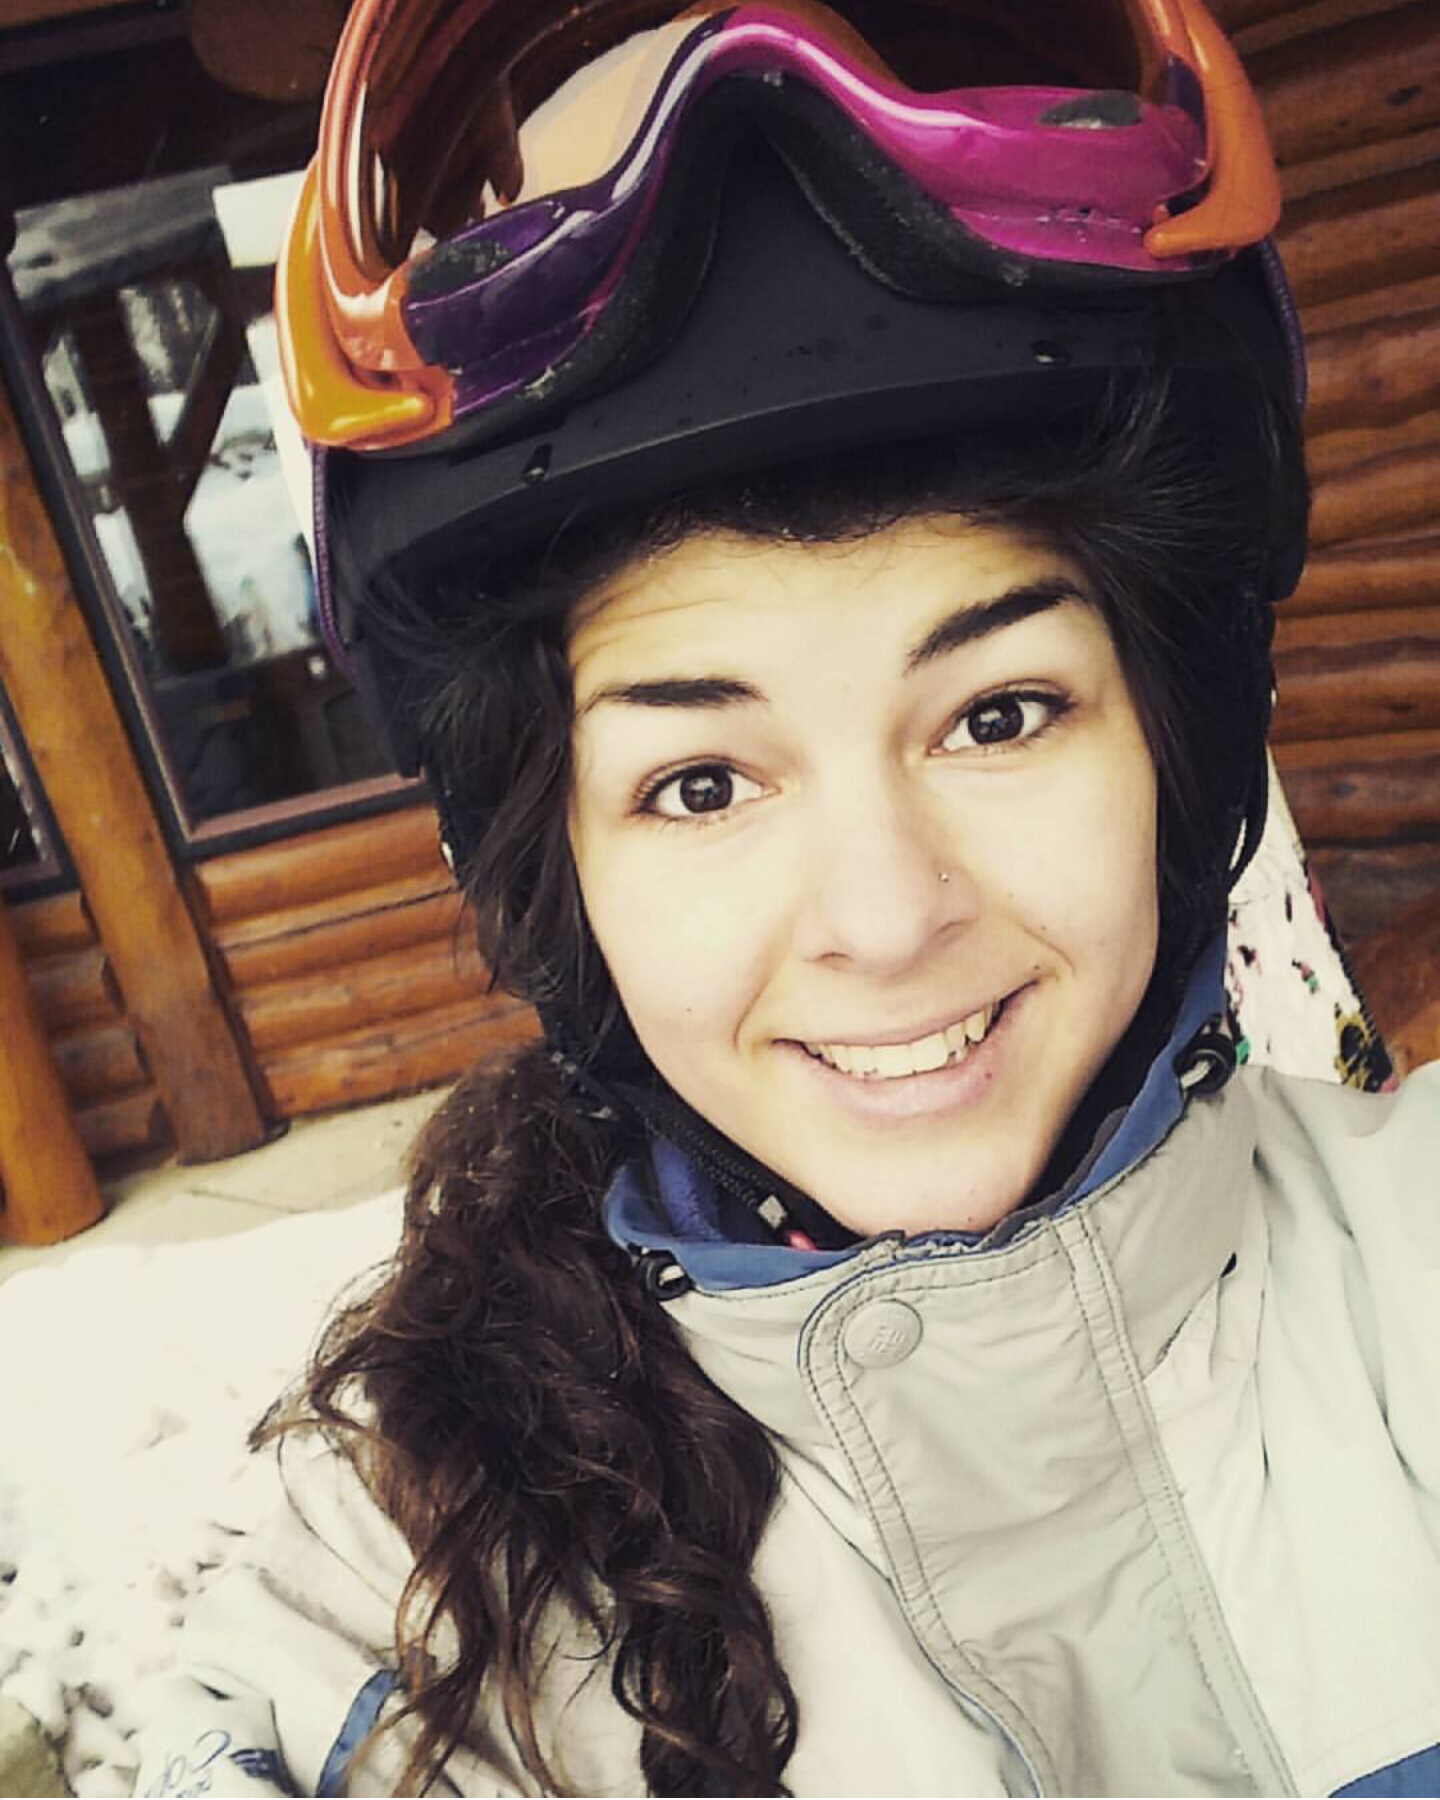 I'm not very good- but snowboarding sure was a blast!